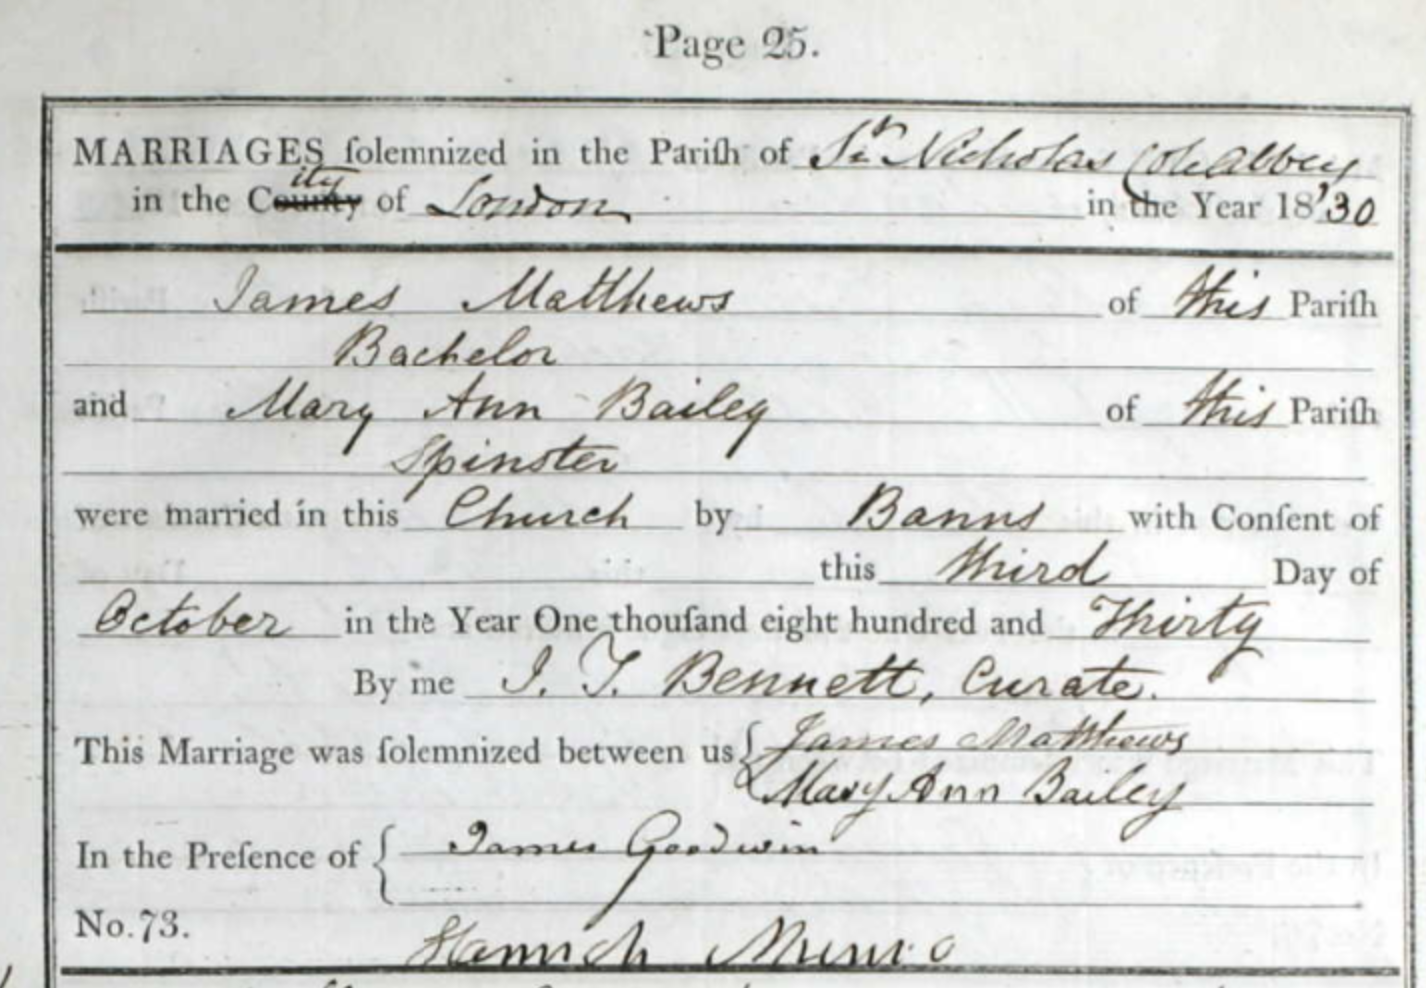 Marriage of James Matthews and Mary Ann Bailey